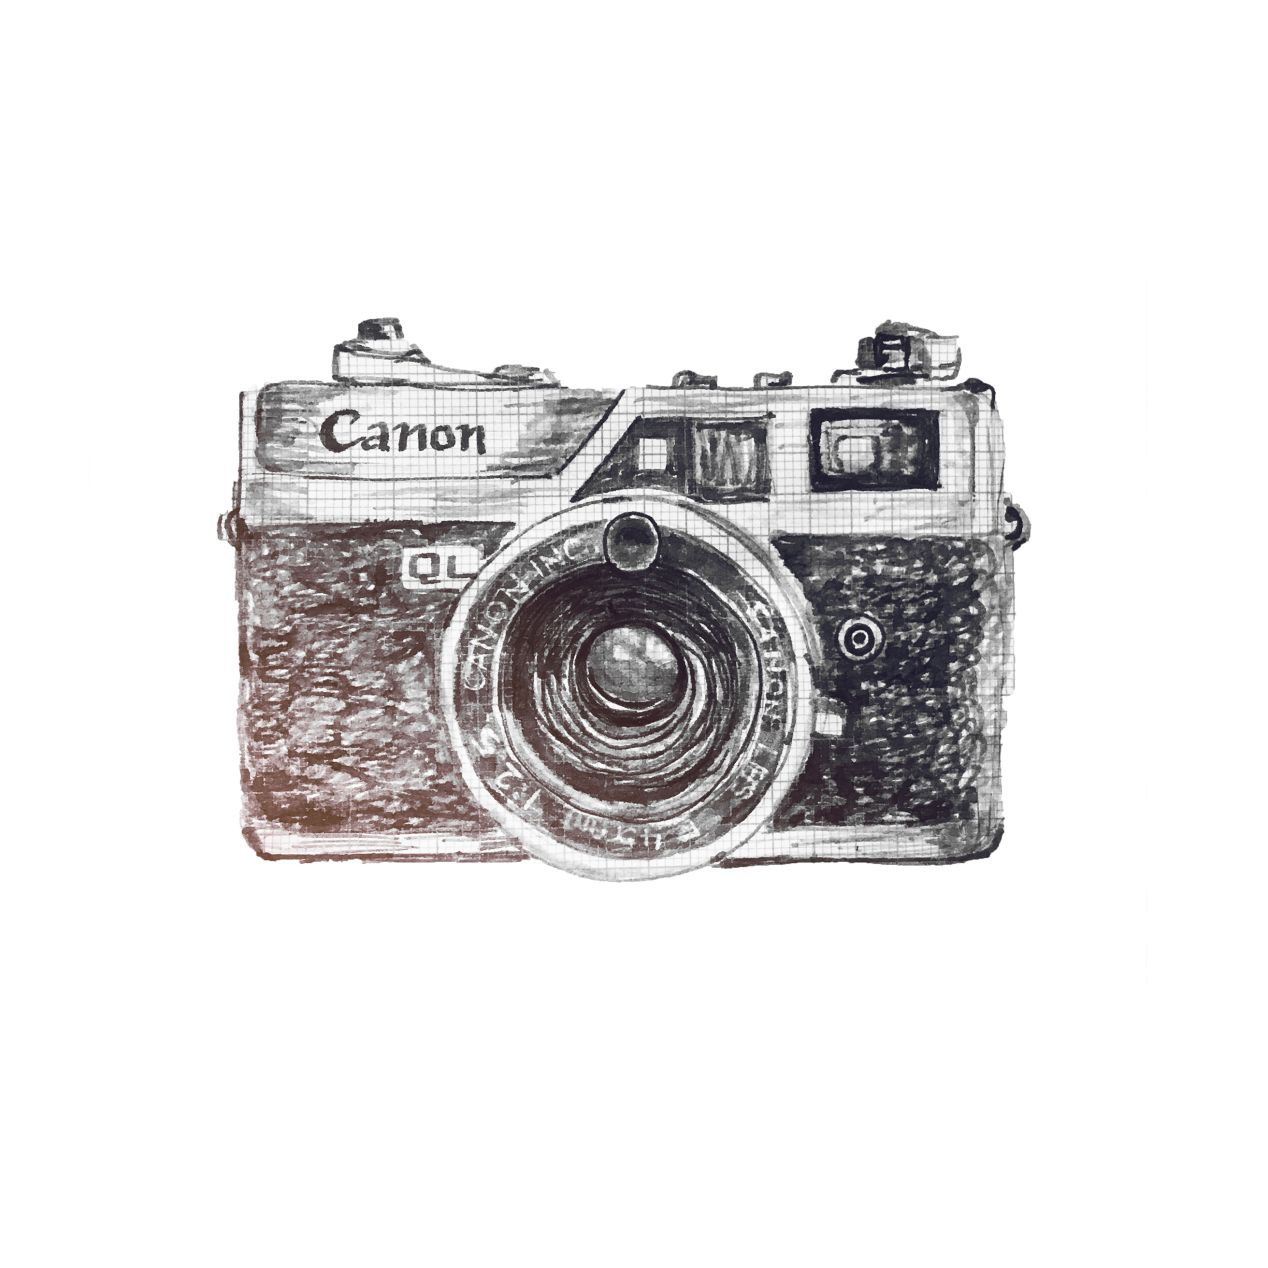 Canon Canonet QL-25 is a fixed 45mm f/2.5 lens 35mm rangefinder. Shutter priority with manual override. Launched in 1965, Japan. $.